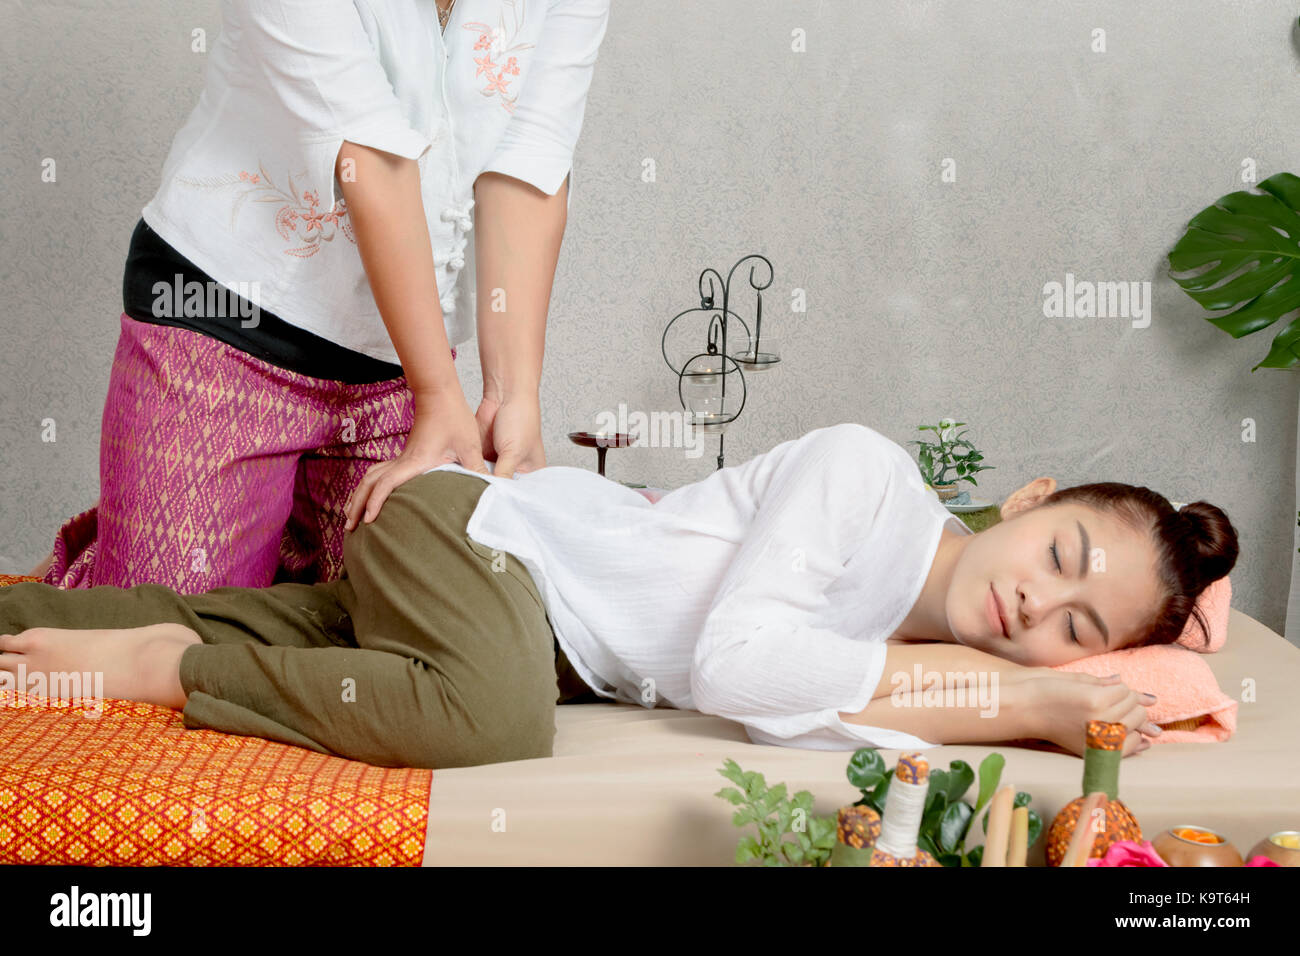 thai massage woman stock photos thai massage woman stock images alamy. Black Bedroom Furniture Sets. Home Design Ideas